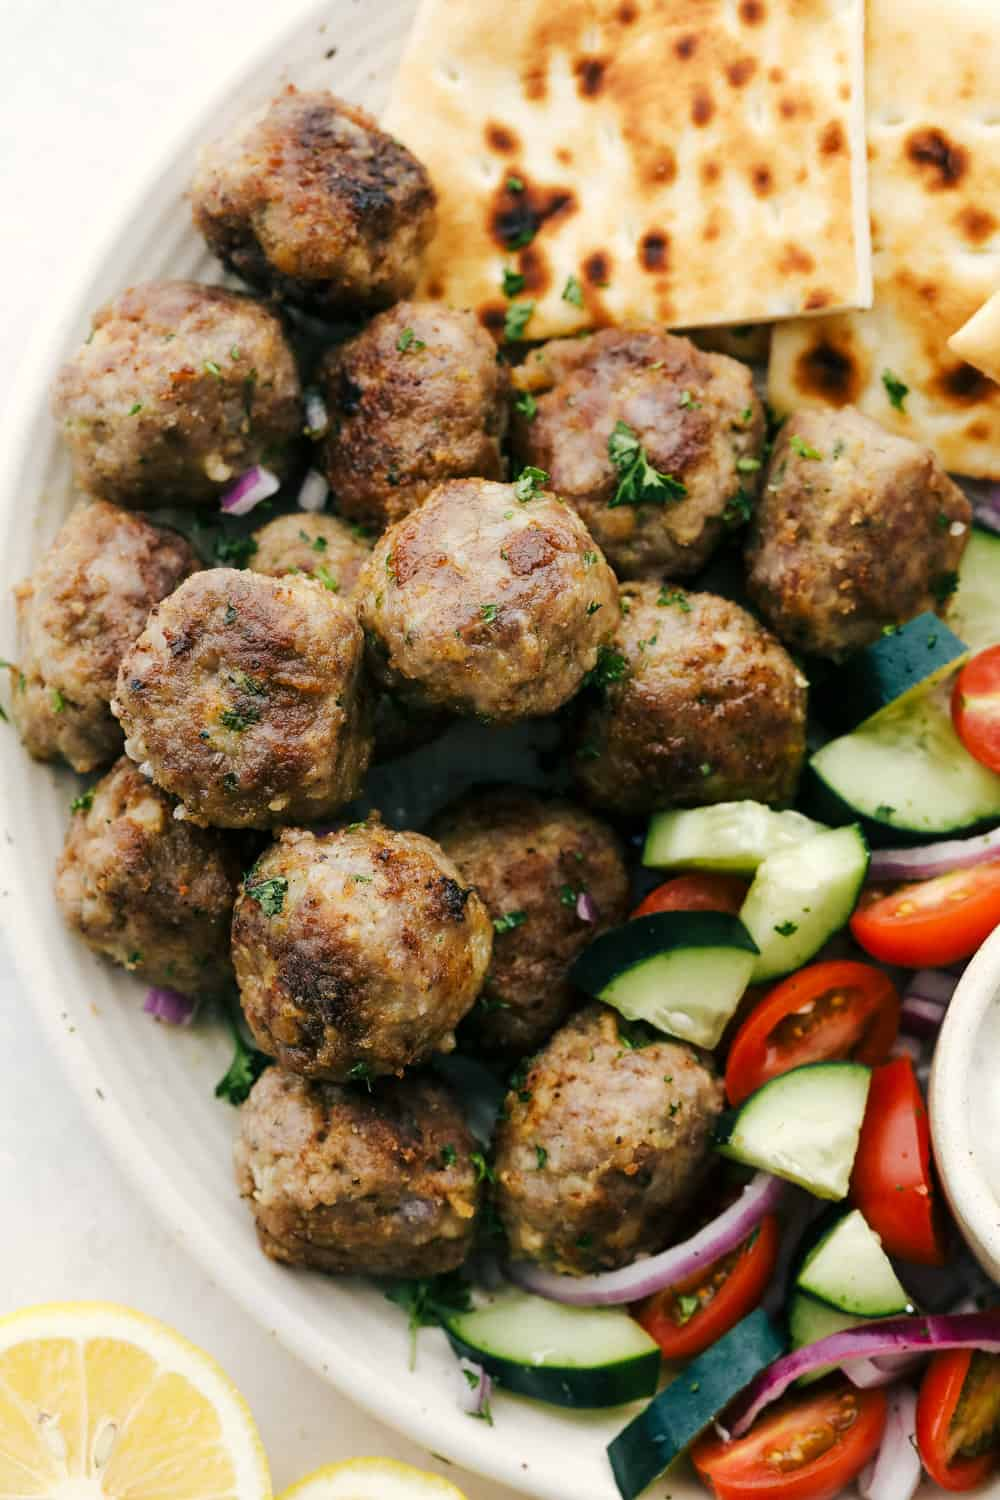 Browned meatballs on a platter with pitas and vegetables.